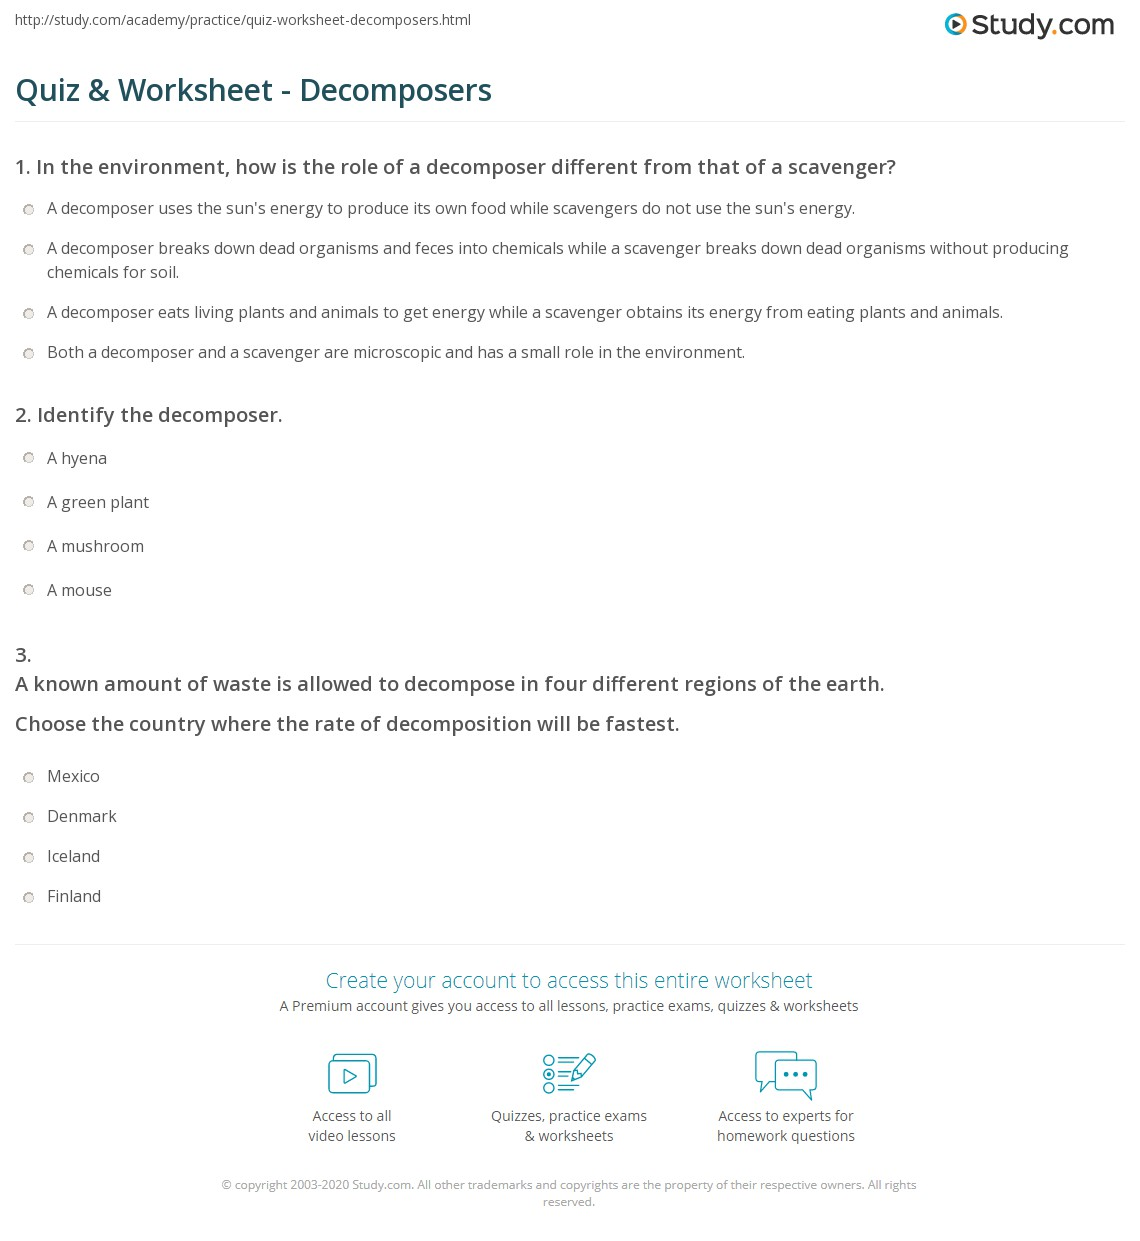 Quiz & Worksheet - Decomposers | Study.com